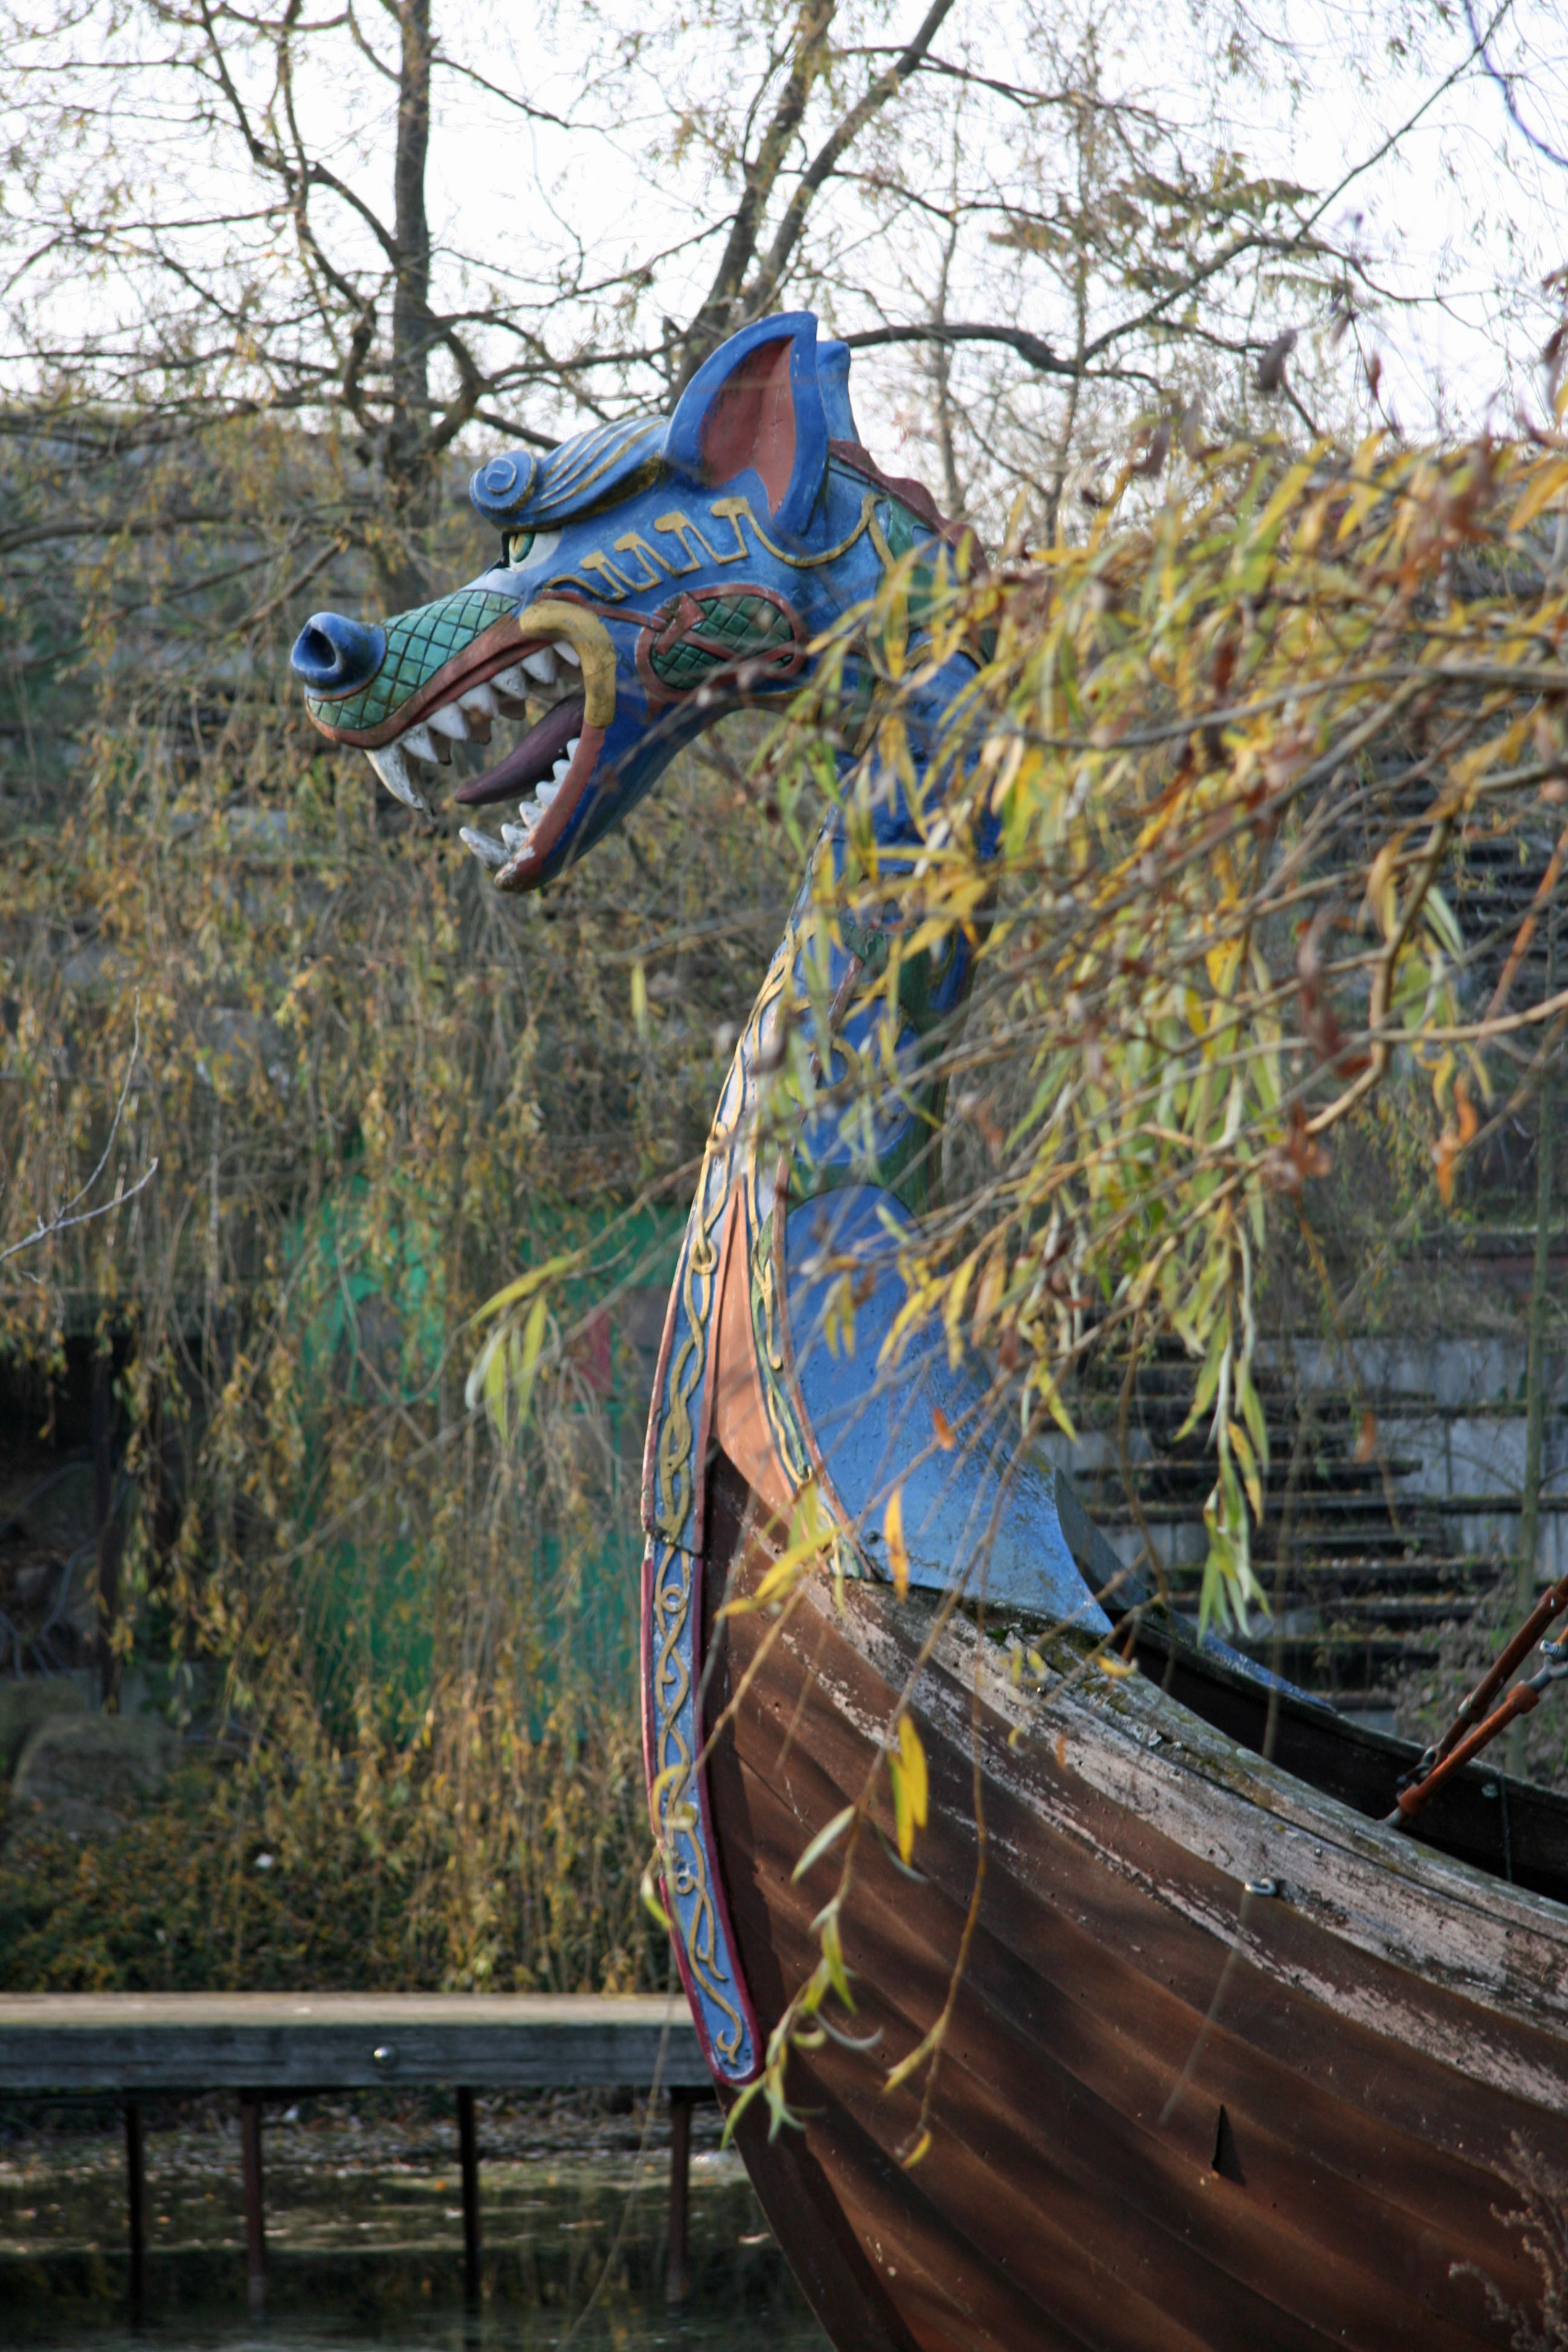 A Viking Boat ride at Spreepark Plänterwald, an abandoned Theme Park in Berlin